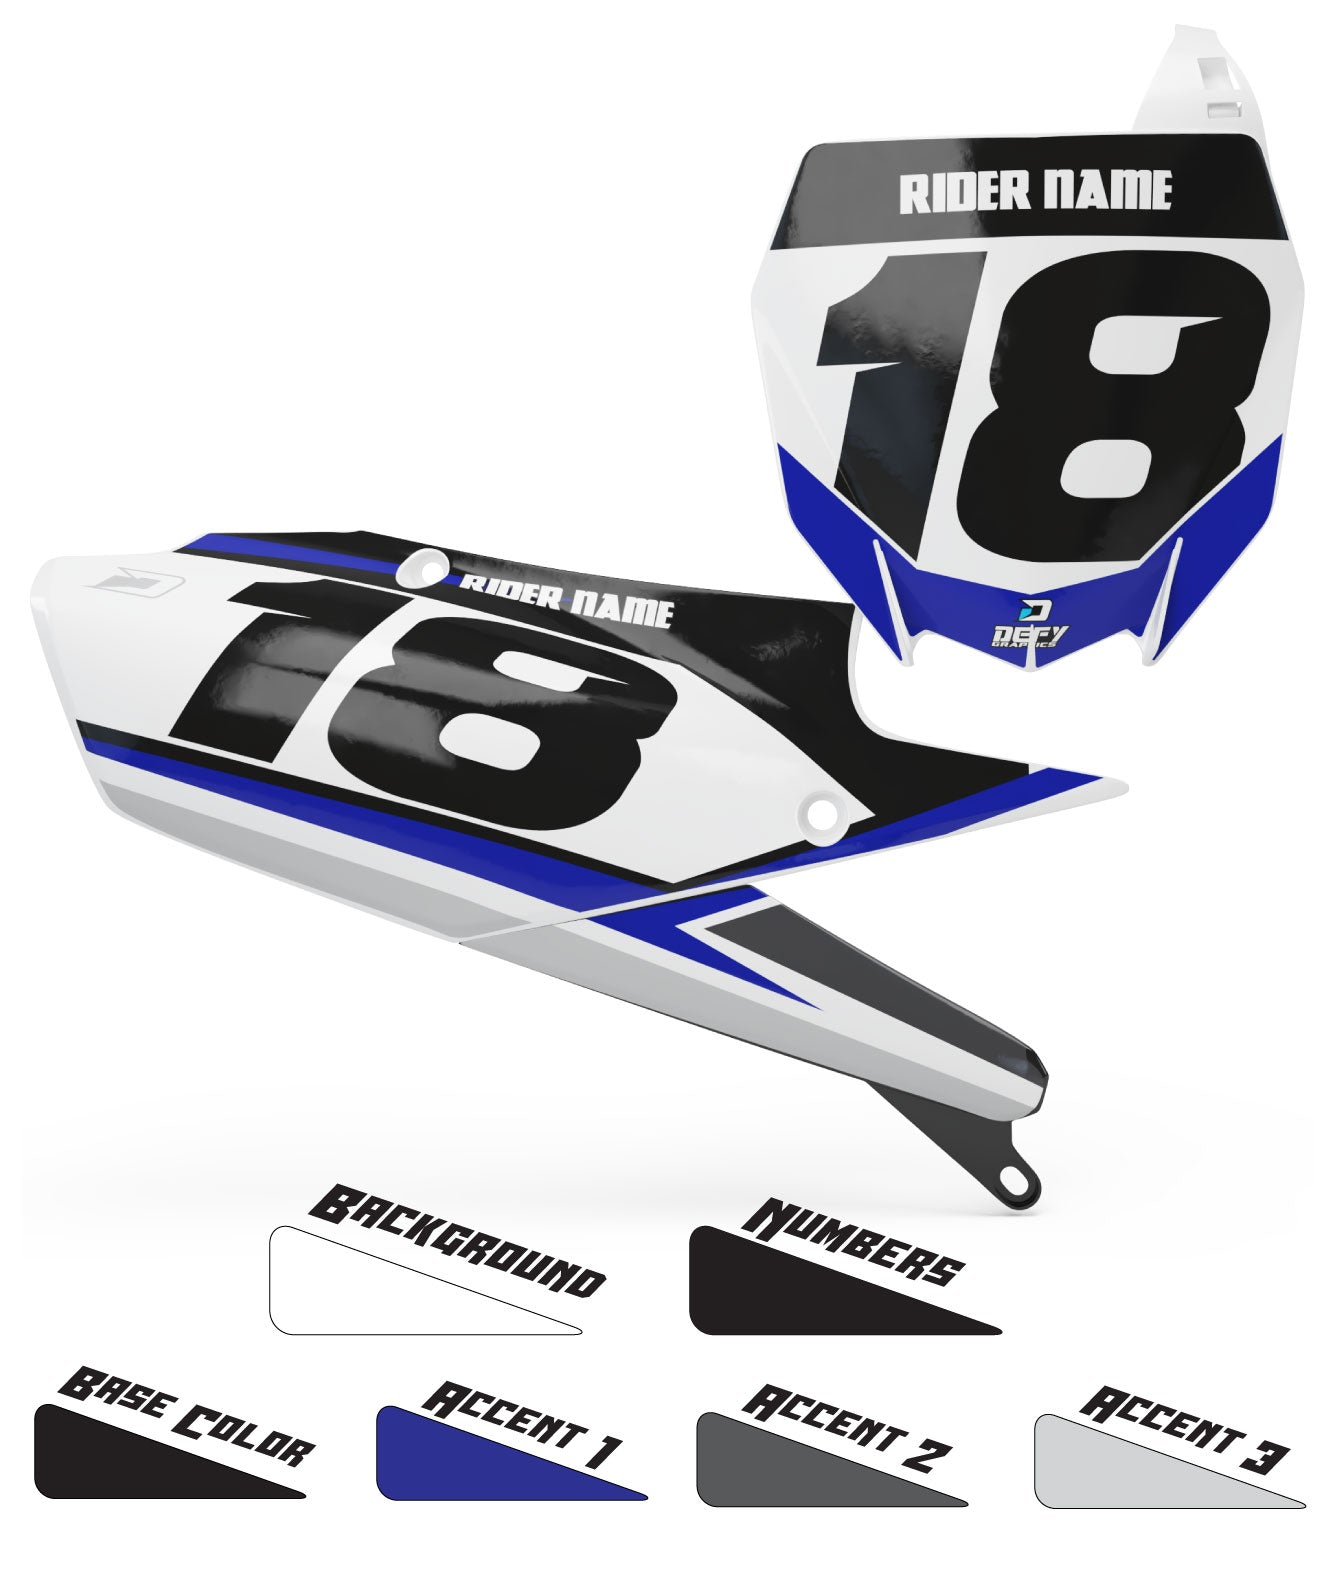 TEAM SERIES Number Plates